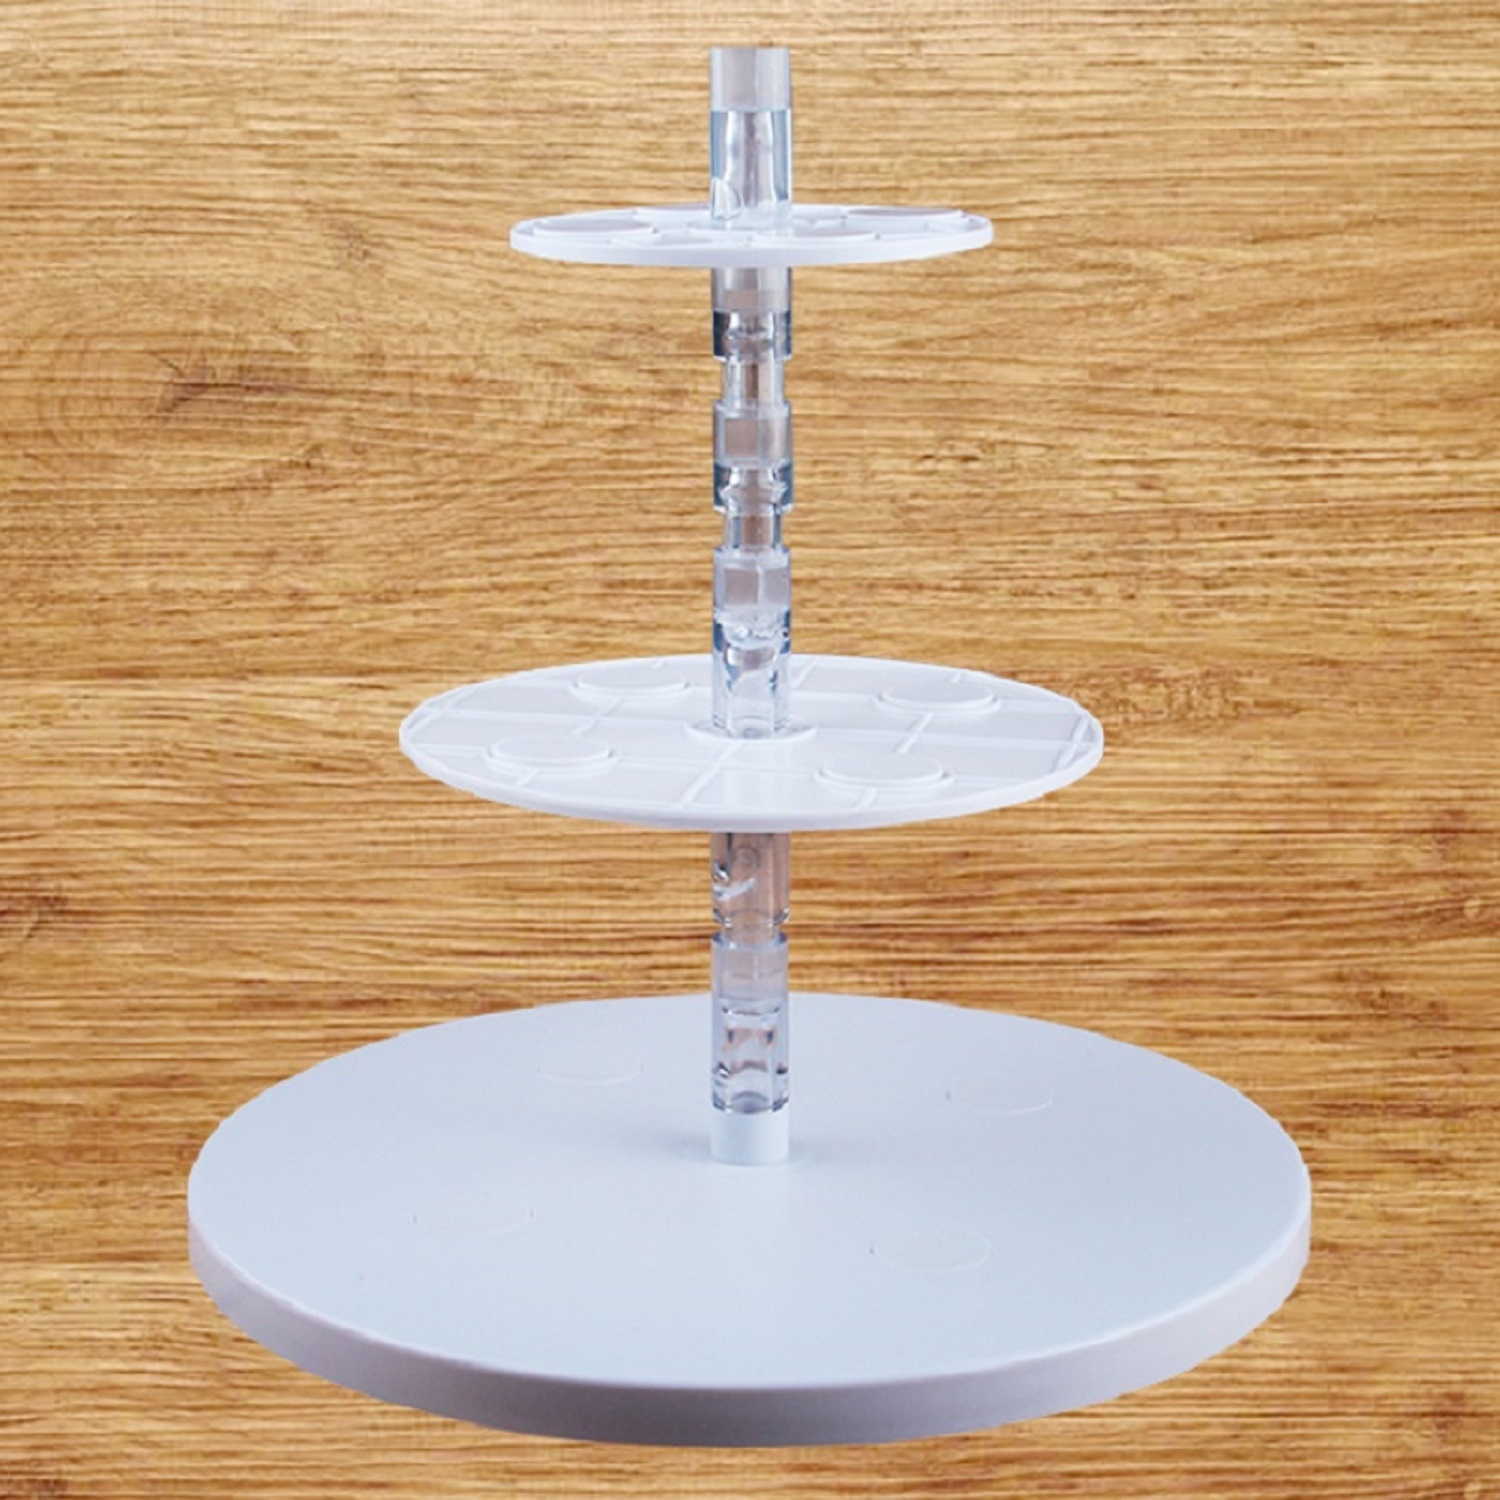 HB0989A Plastic Suspended cake rack cake cupcake turntable stand(3tiers)for Wedding Decoration